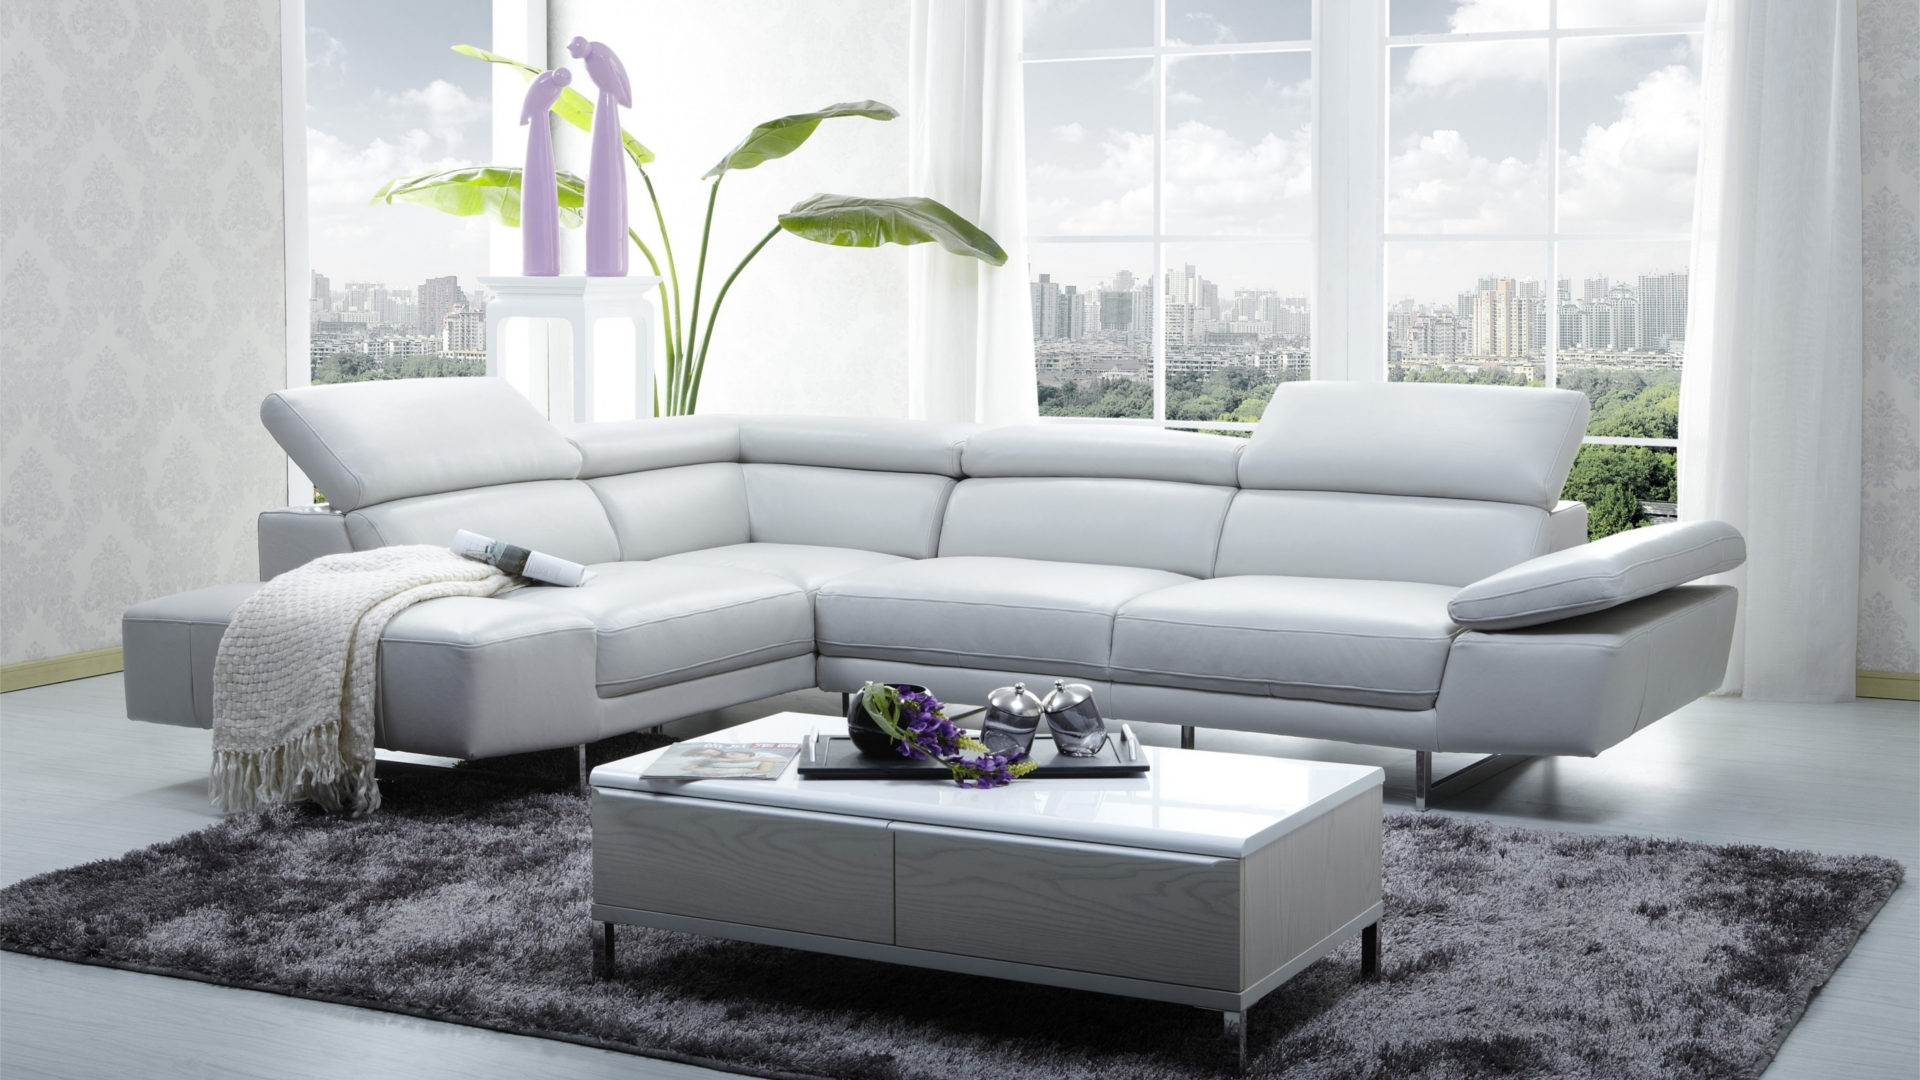 Modern Sectional Sofa Designs Design Trends Premium Psd Vector Downloads - Couch Oder Sofa